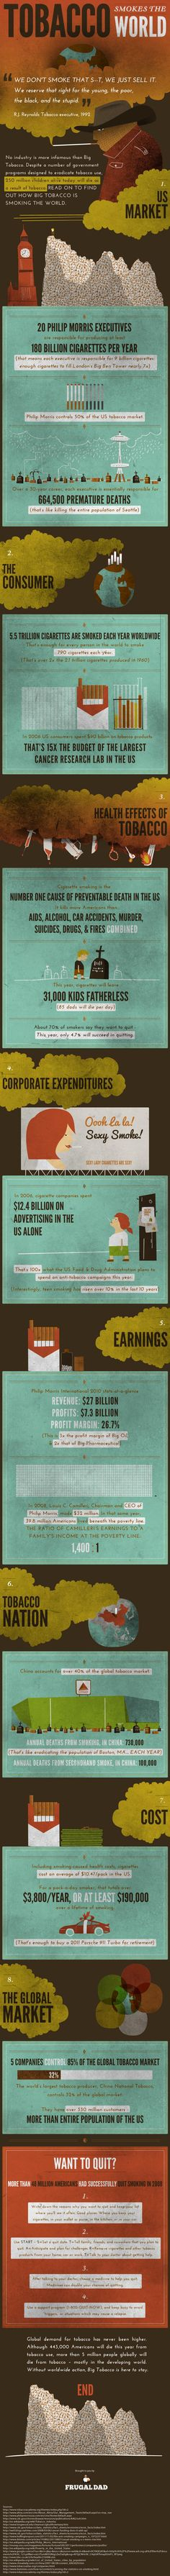 Tobacco Smokes The World (Infographic)